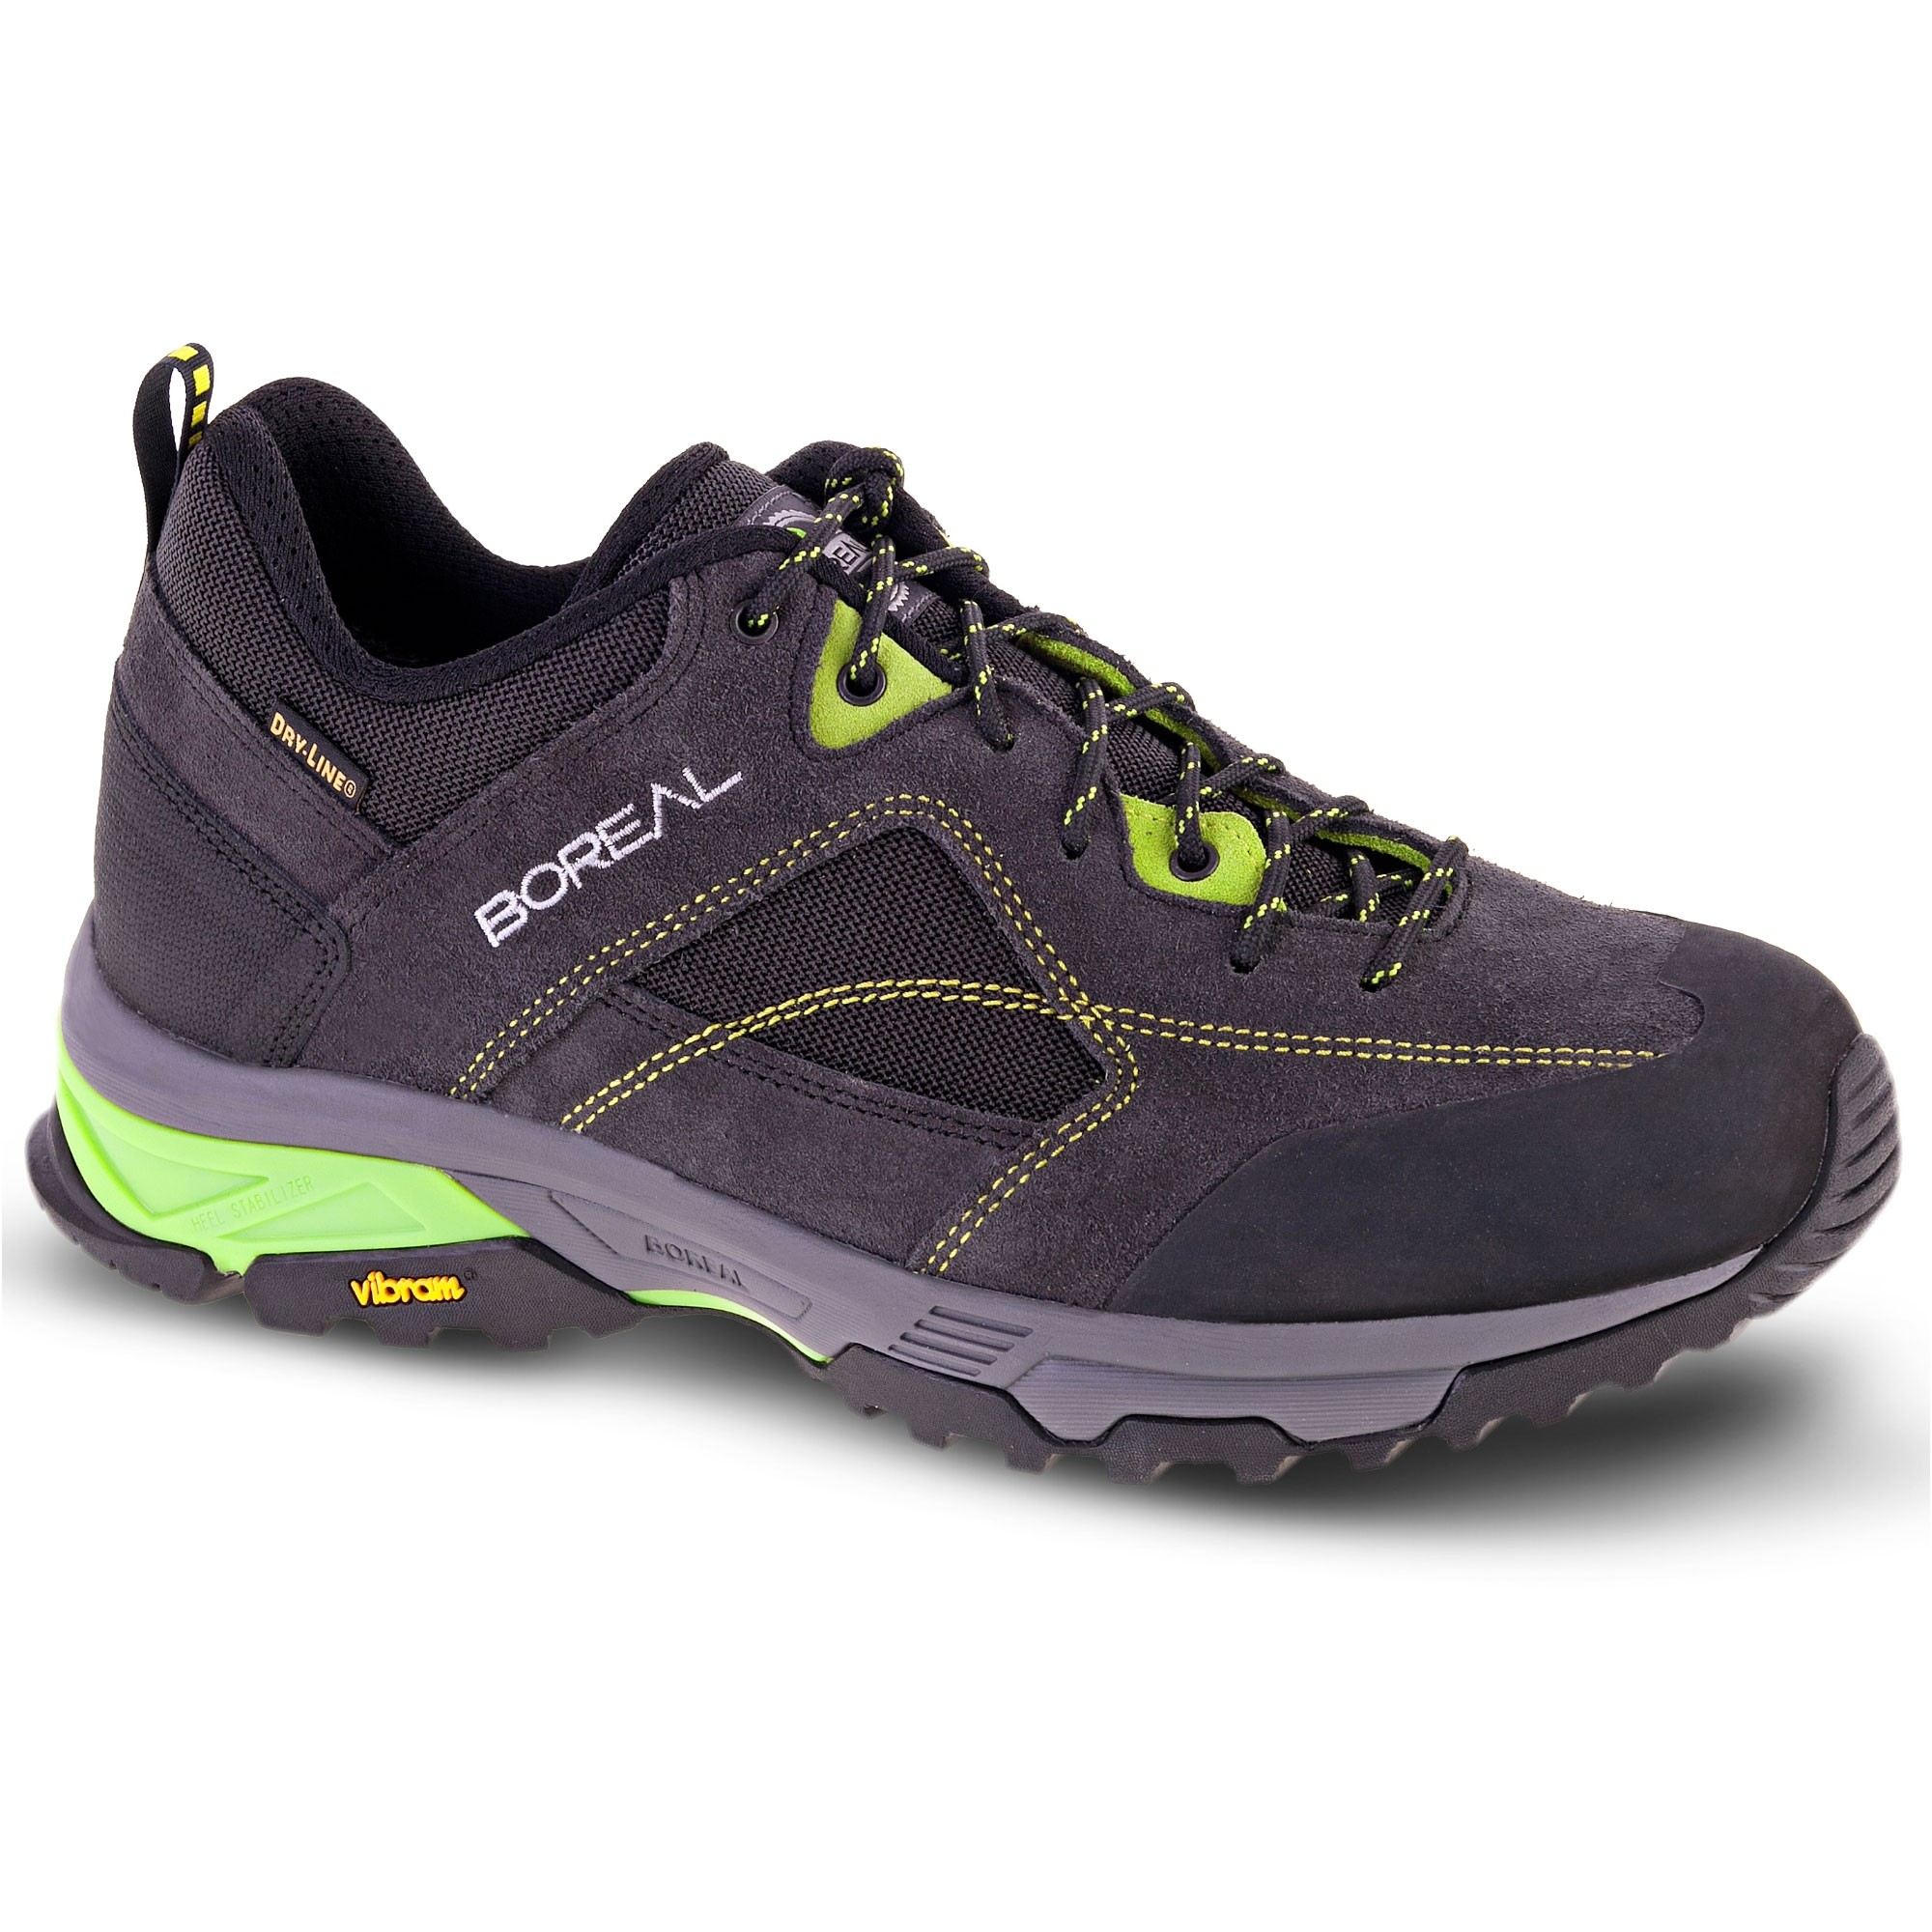 Boreal Tempest Low Approach Shoe - Graphite